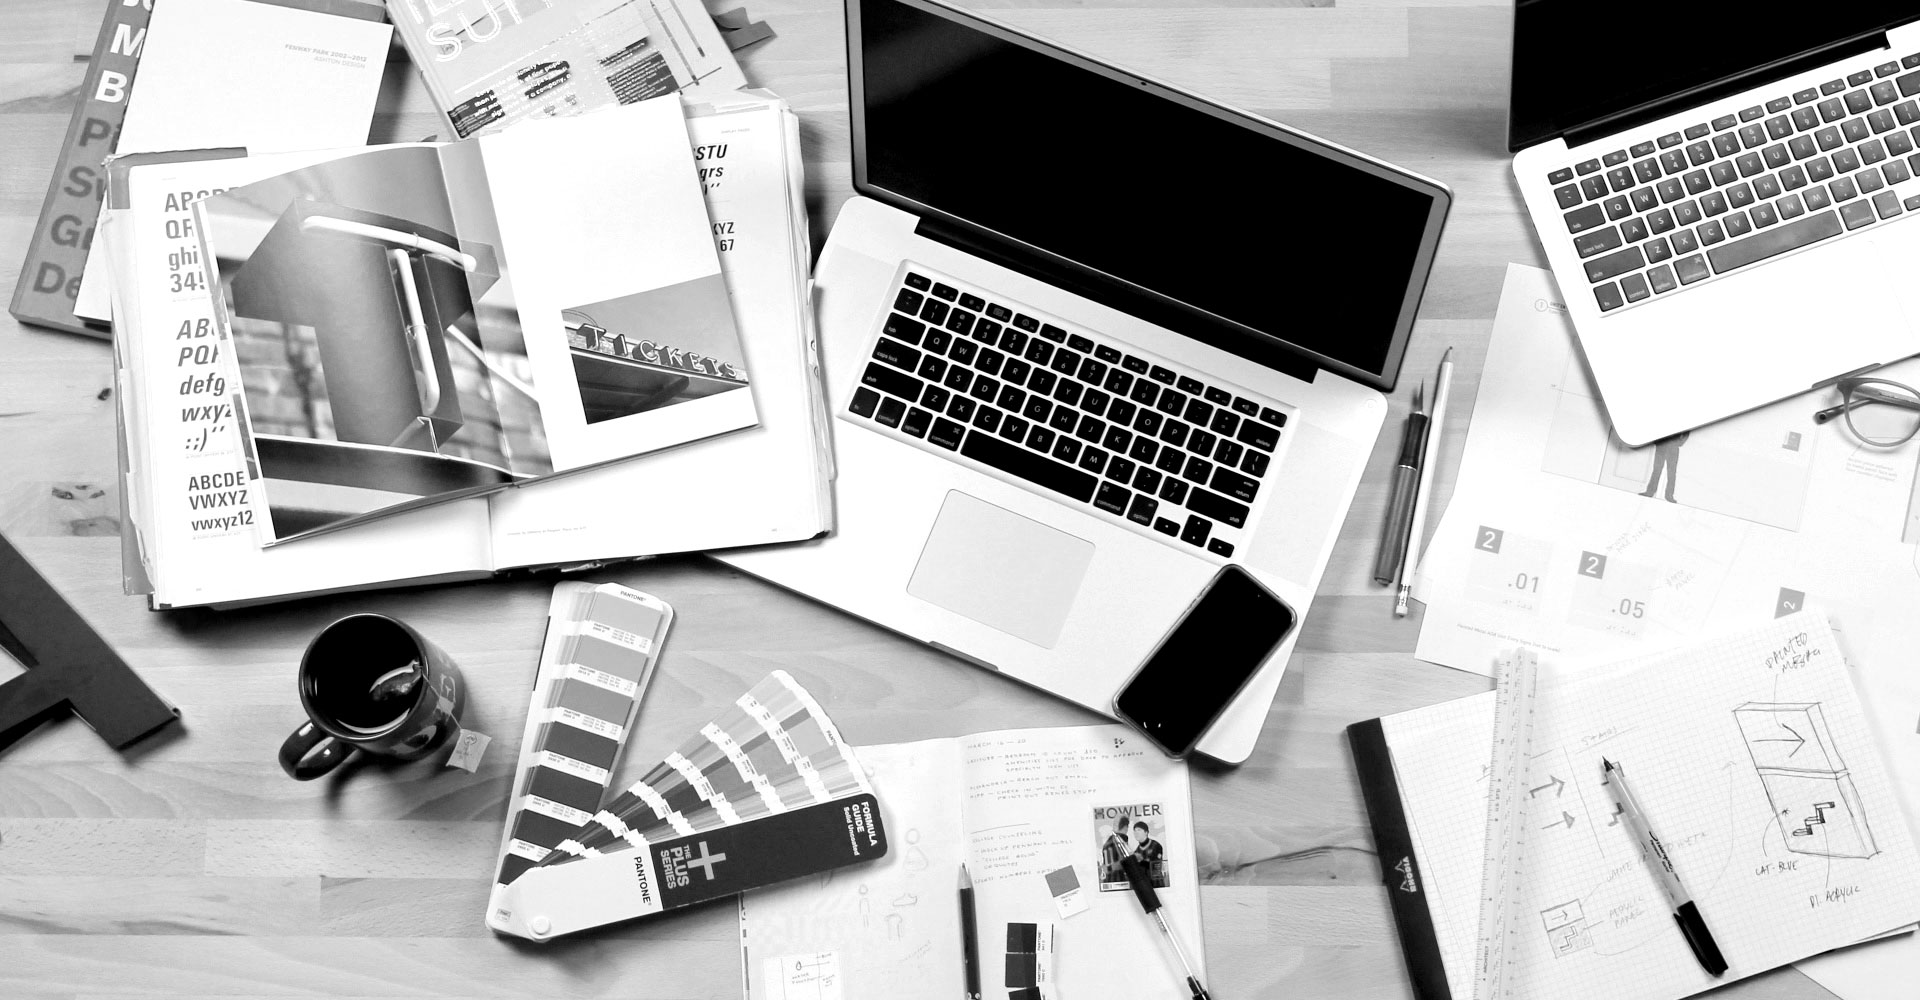 Ashton_Office_Desk_bw_2